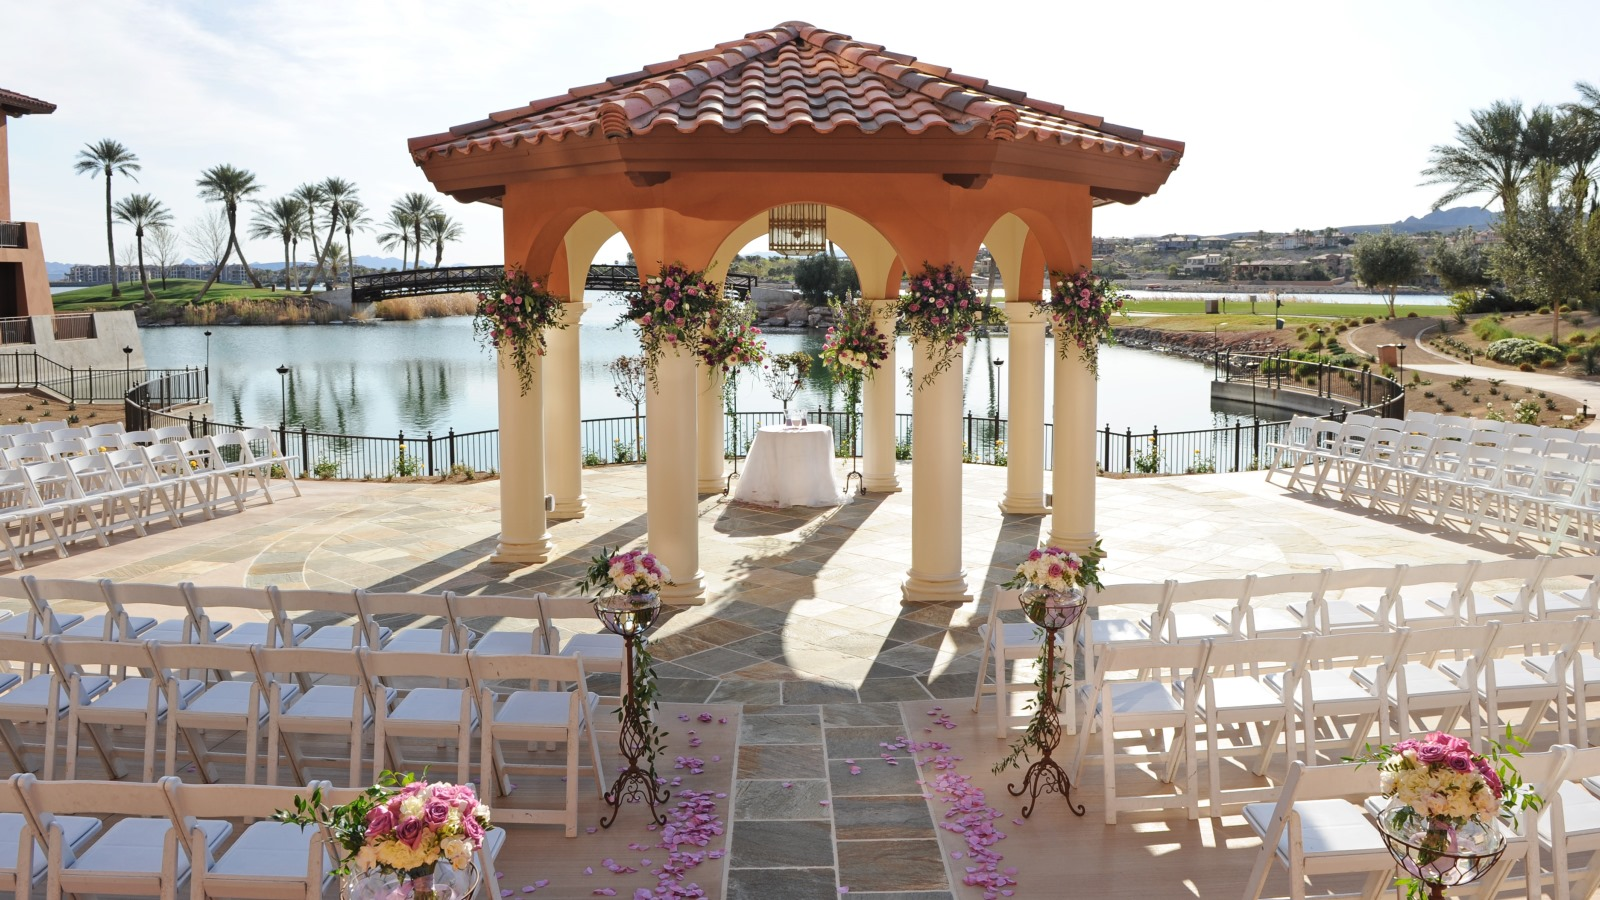 Lake Las Vegas Wedding Venues - Andalusian Gardens